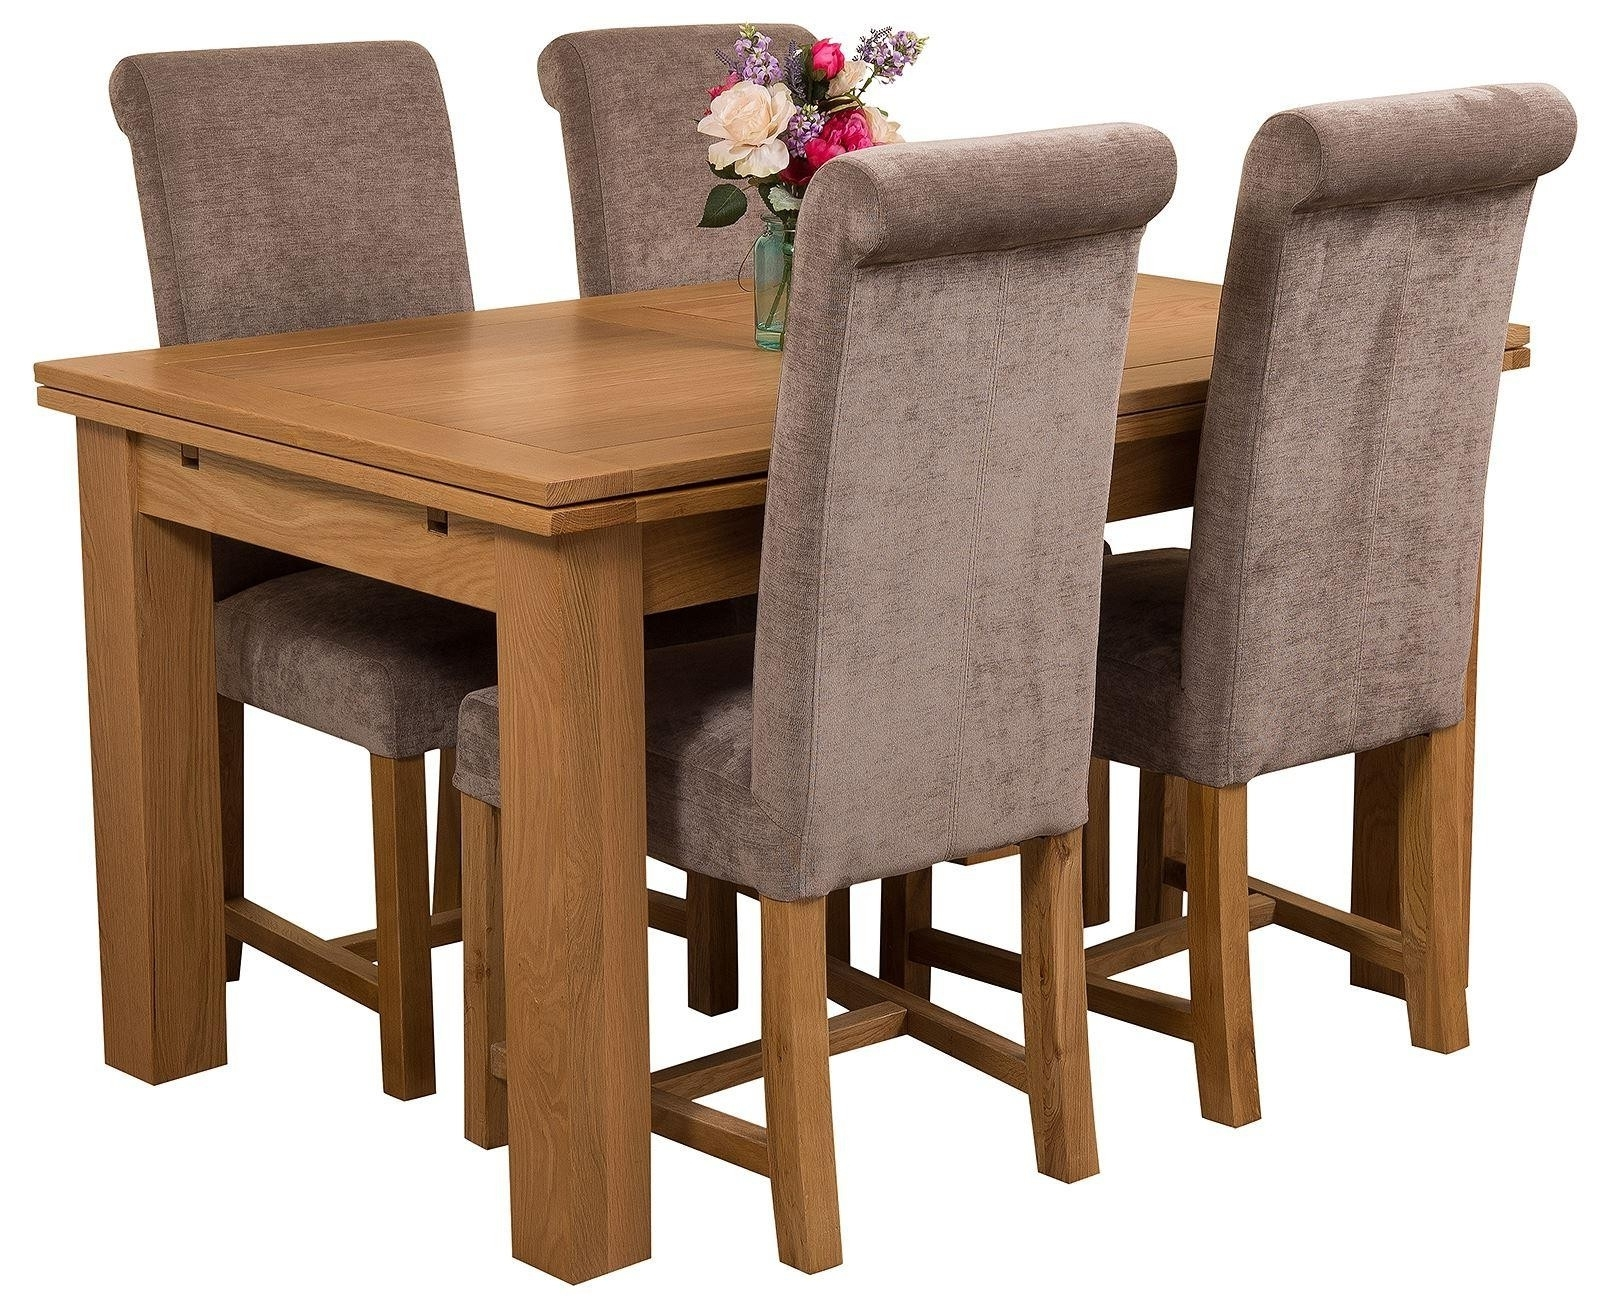 Richmond Medium Oak Dining Set 4 Grey Chairs Regarding Best And Newest Oak Dining Tables And Fabric Chairs (View 21 of 25)